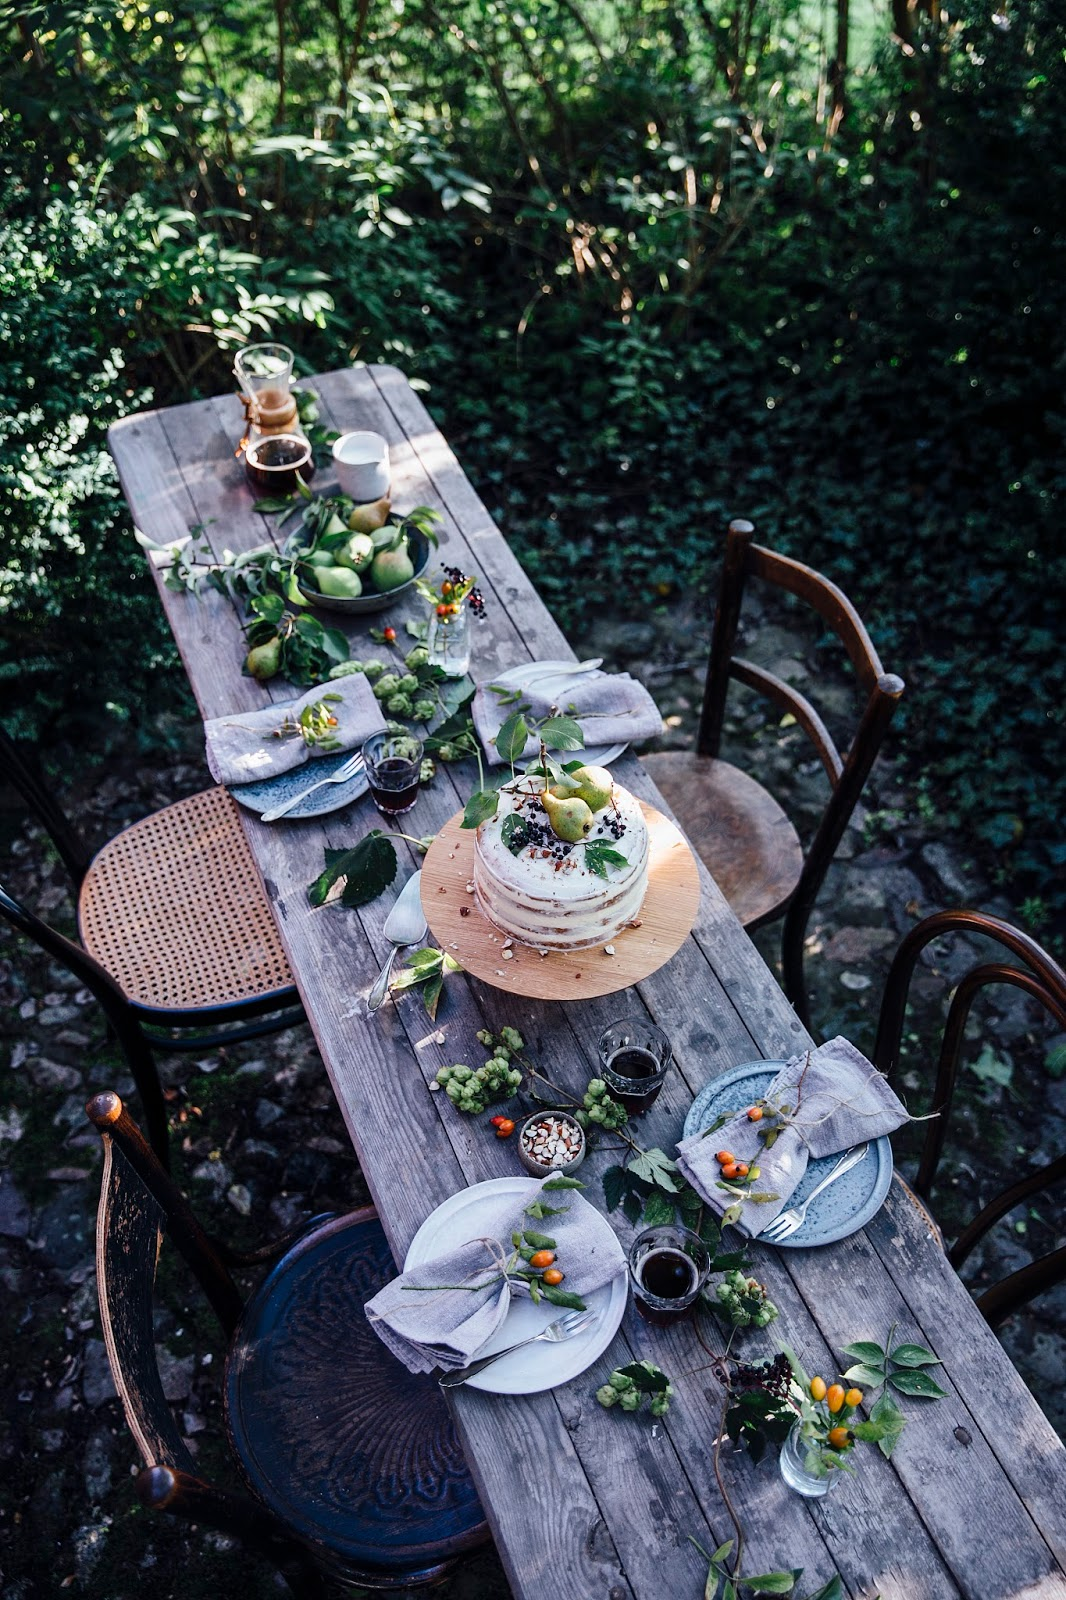 ROSE & IVY Journal Fall Table Setting